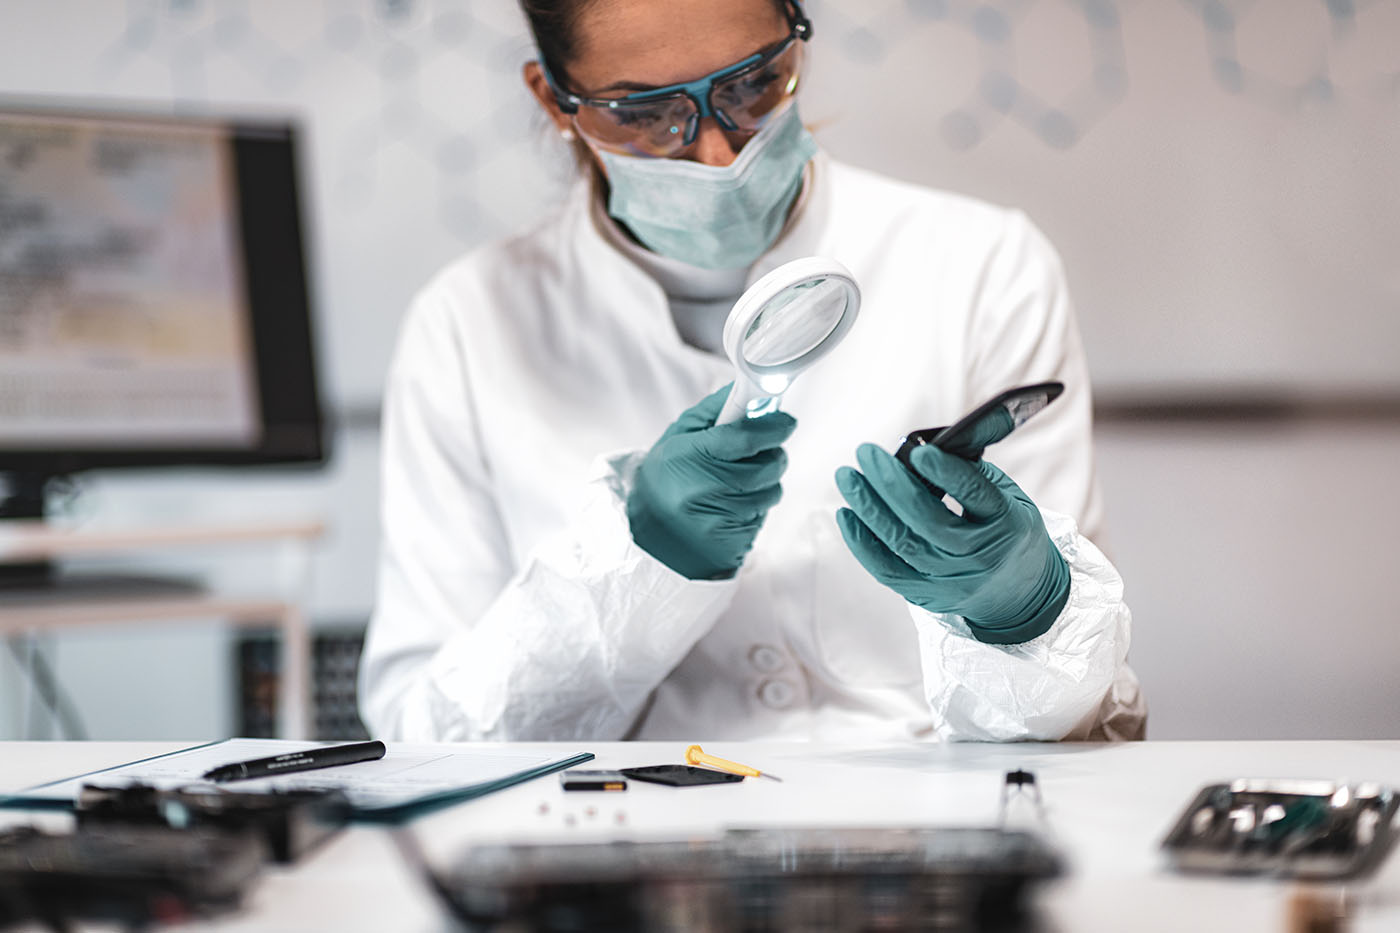 How To Become A Forensic Science Technician Career And Salary Information